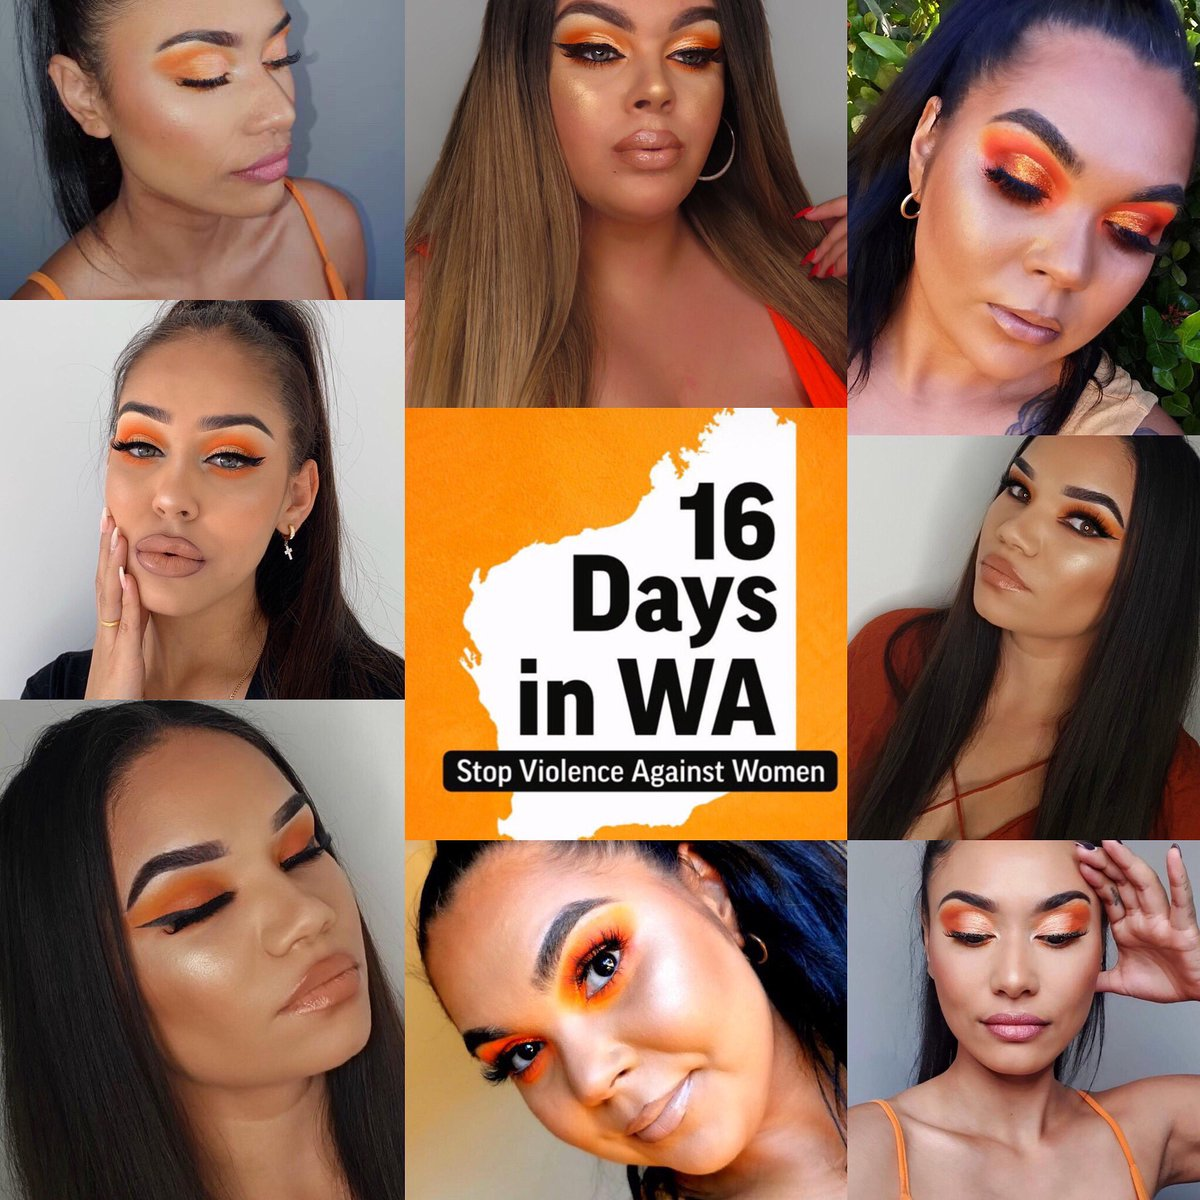 As sisters, as women, with or without stories or experiences of our own we stand together to support and give awareness to STOPPING the violence against women   #16daysinwatostopviolenceagainstwomen #eyemakeuplook #supportingwomen #stopviolenceagainstwomen #wearequeenspic.twitter.com/4nNdZ3XZC5